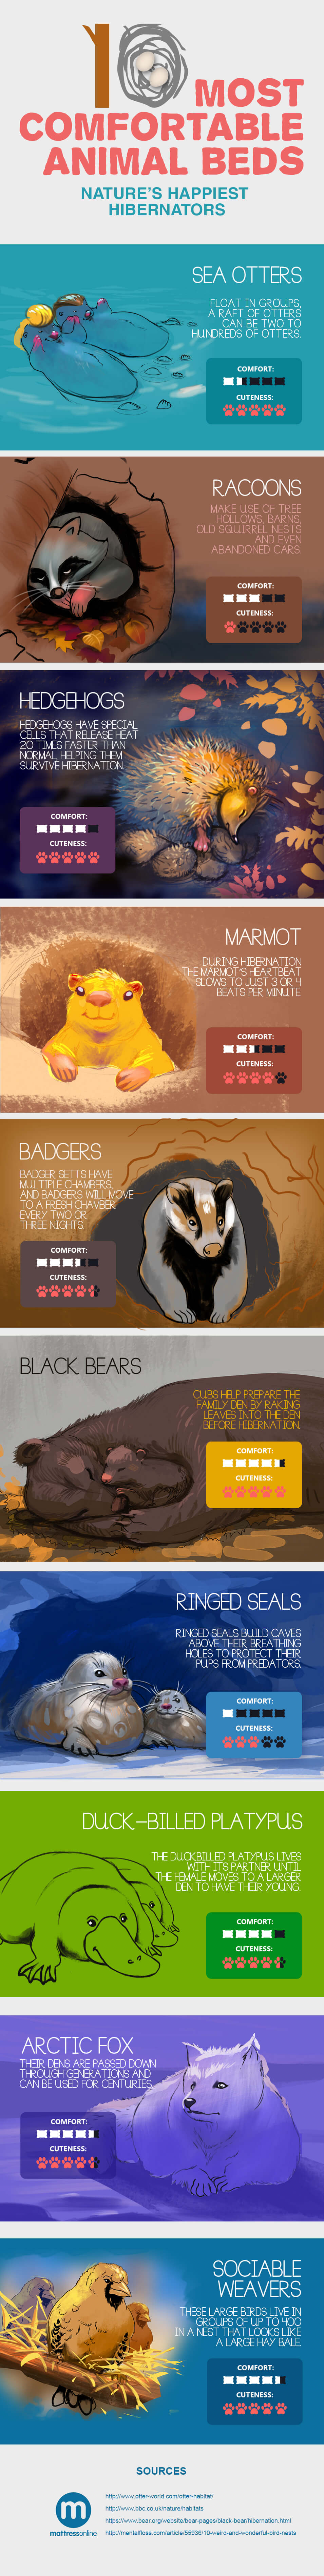 10 of Nature's Happiest Hibernators [Infographic] | ecogreenlove